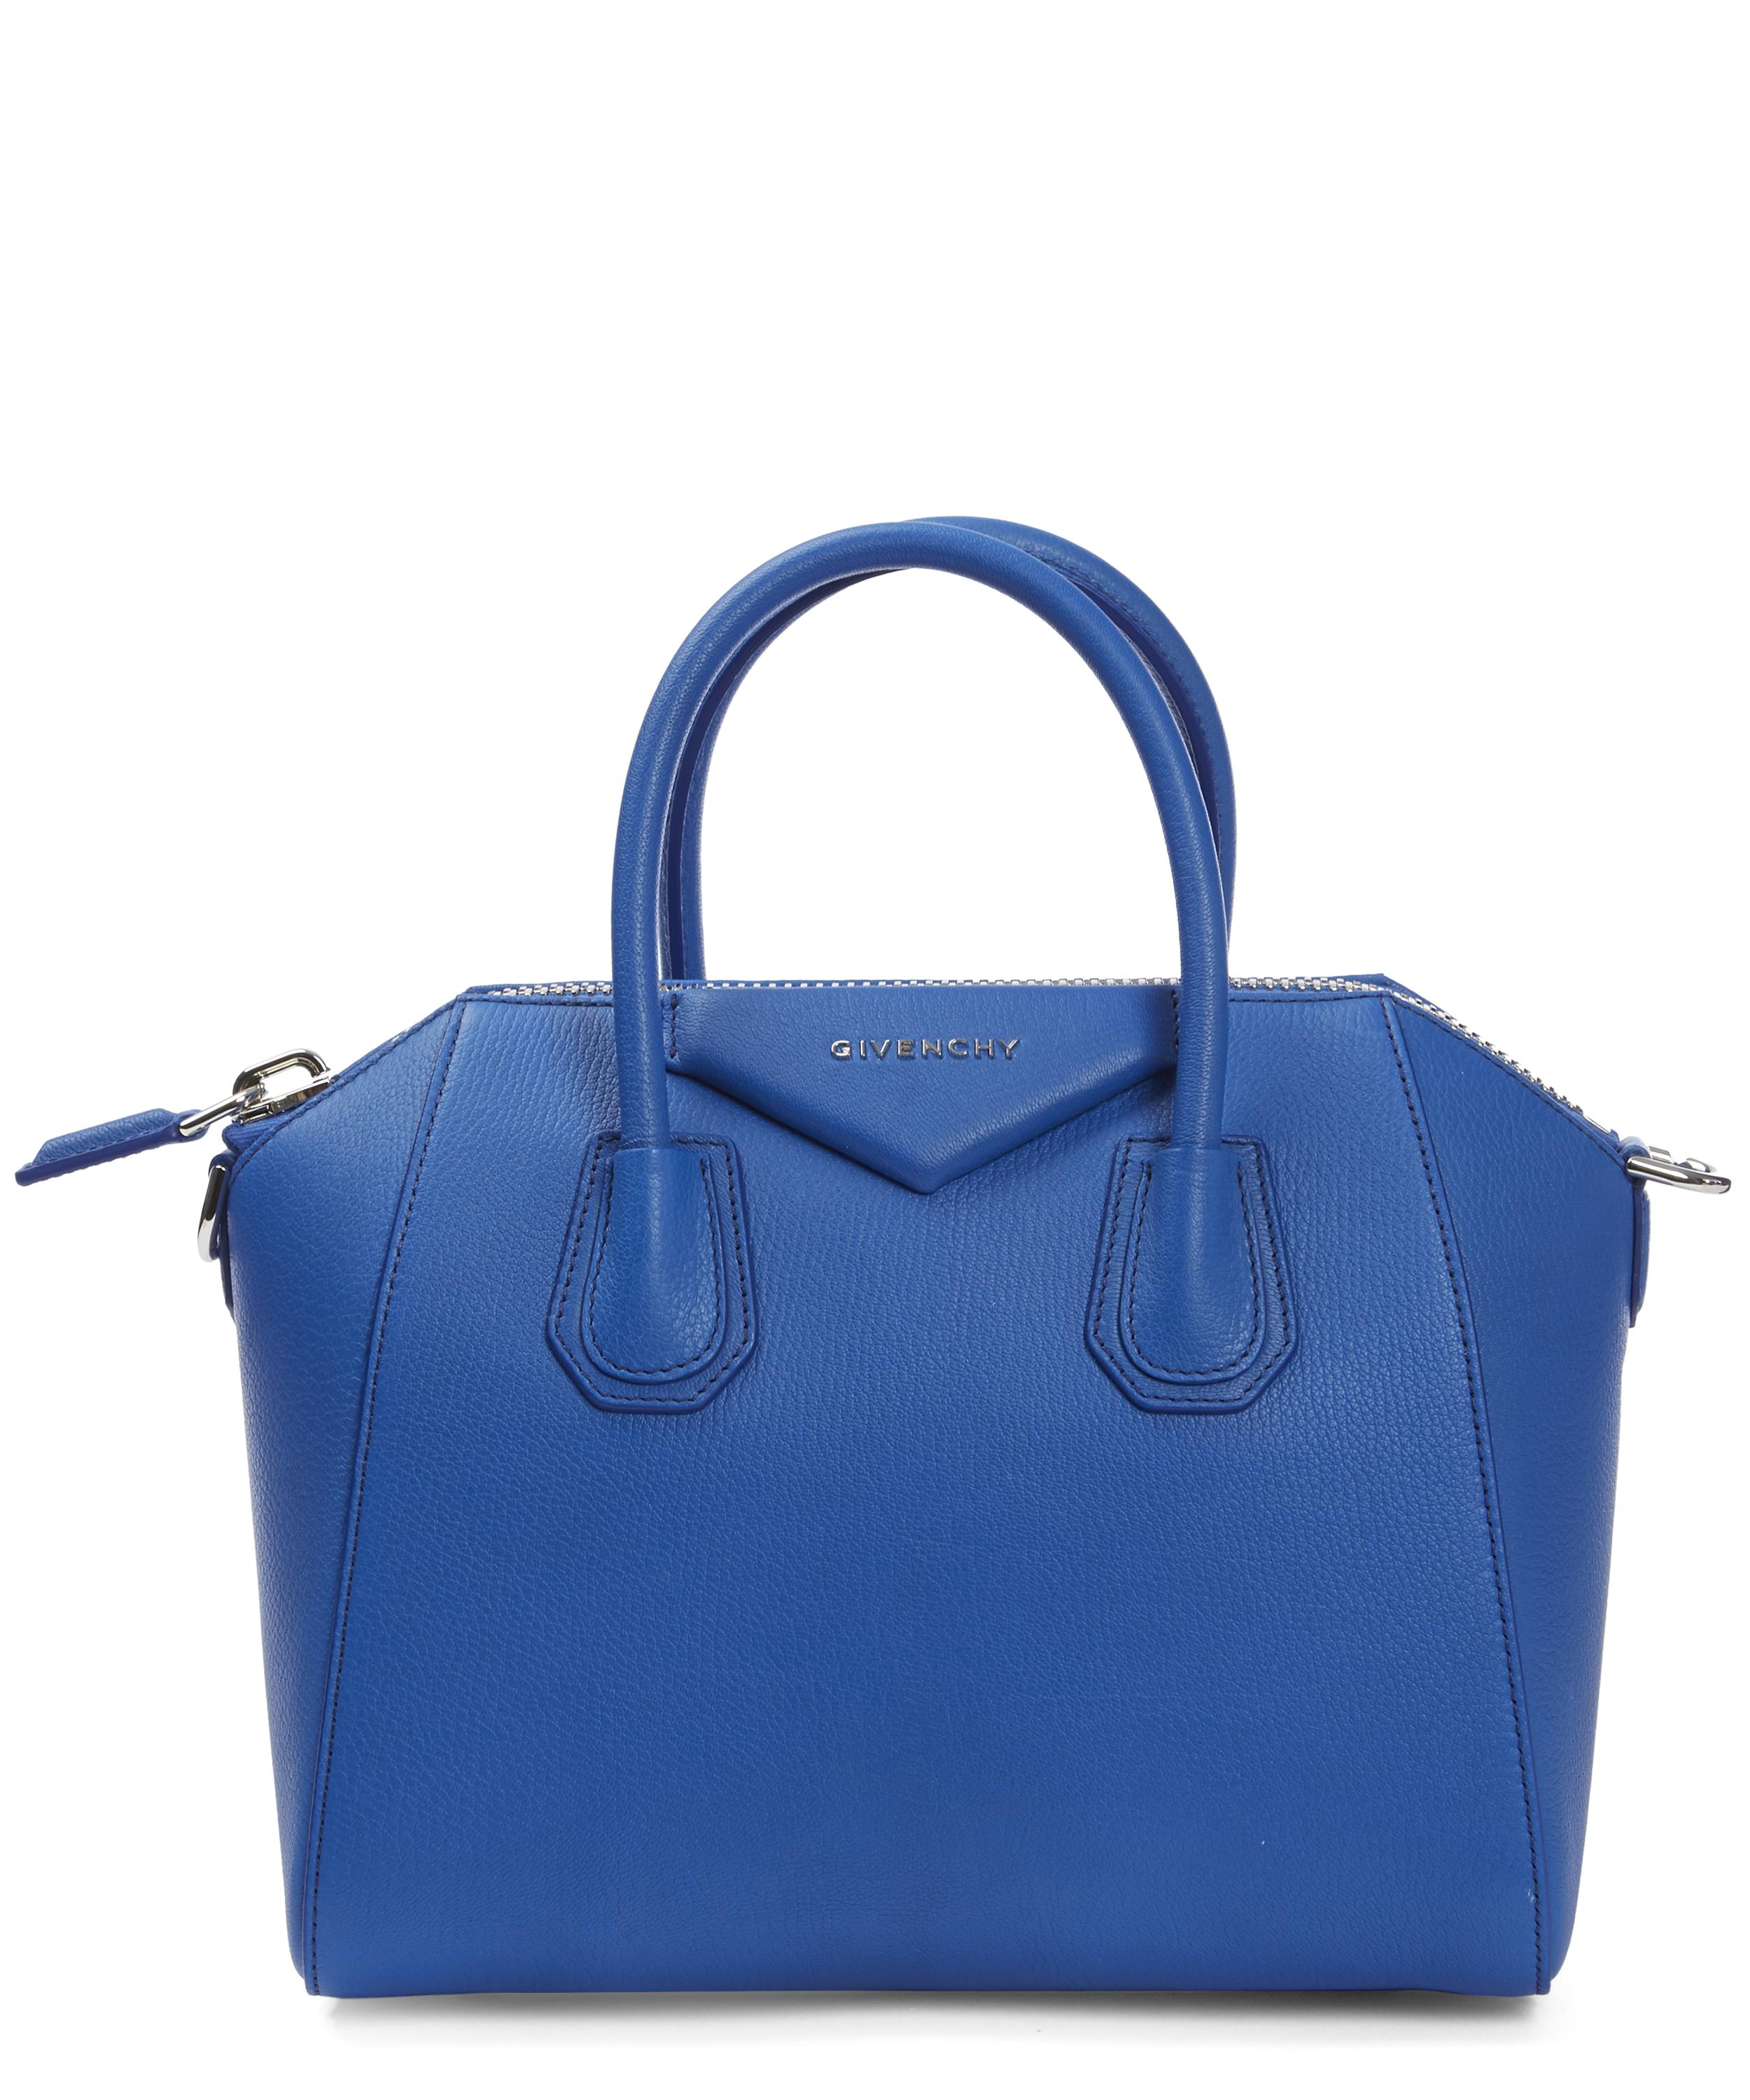 1338ec49da85 Antigona Medium Sugar Leather Tote Bag